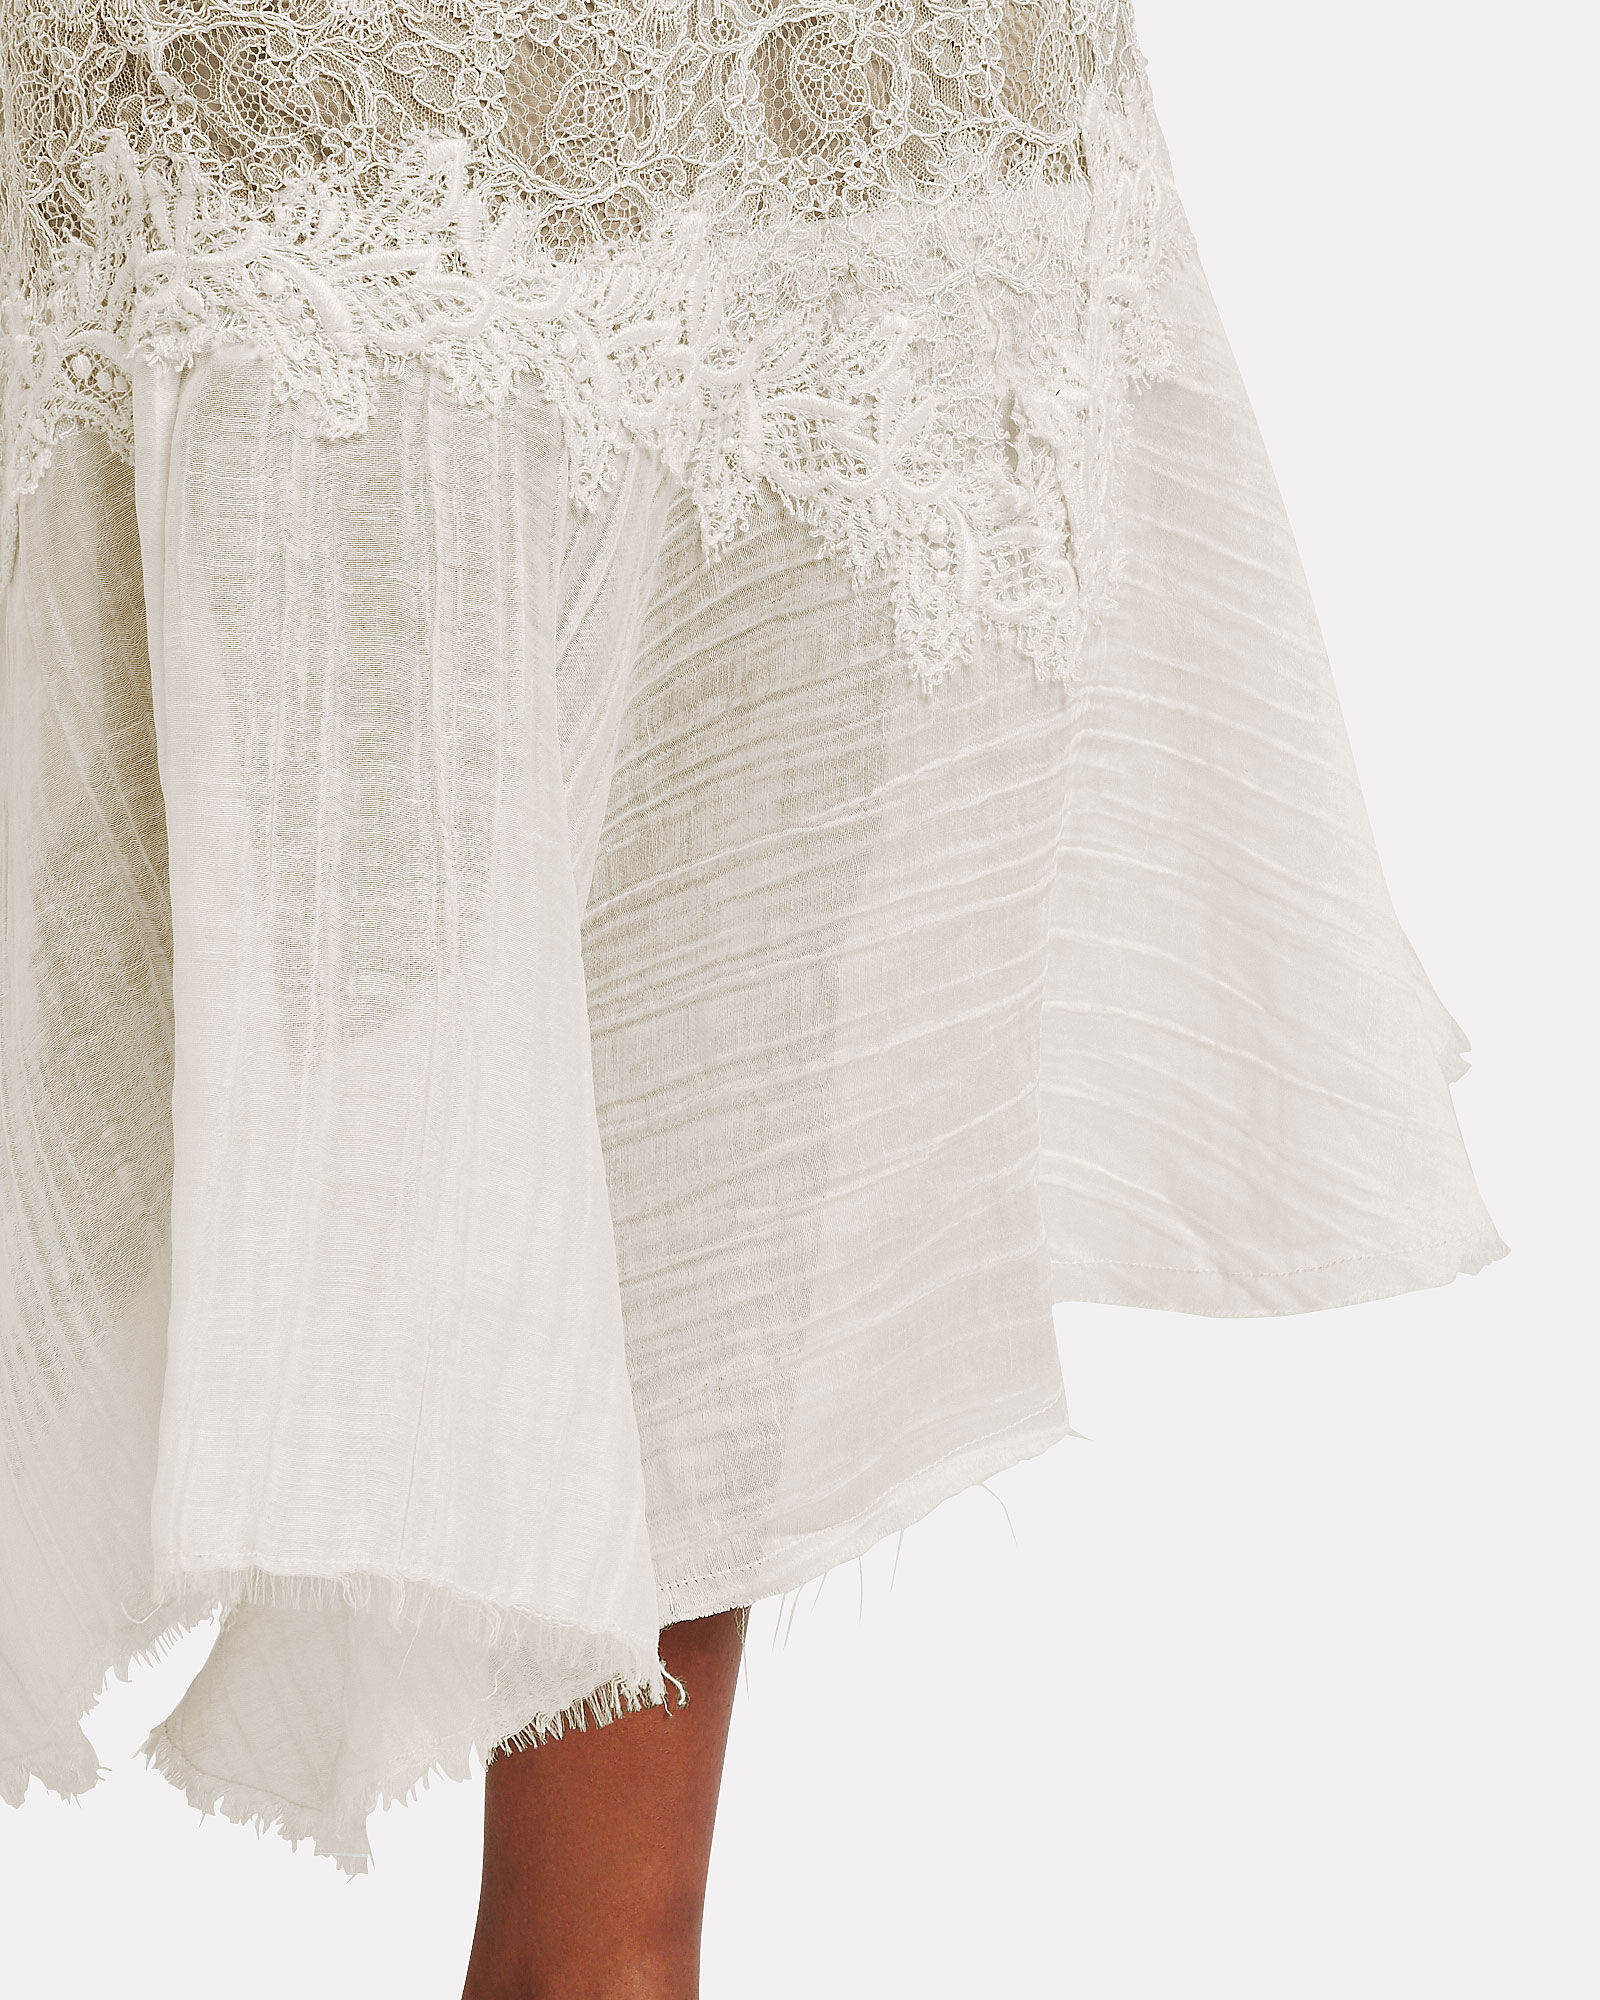 Beretti Lace-Trimmed Asymmetrical Skirt, BEIGE/WHITE, hi-res